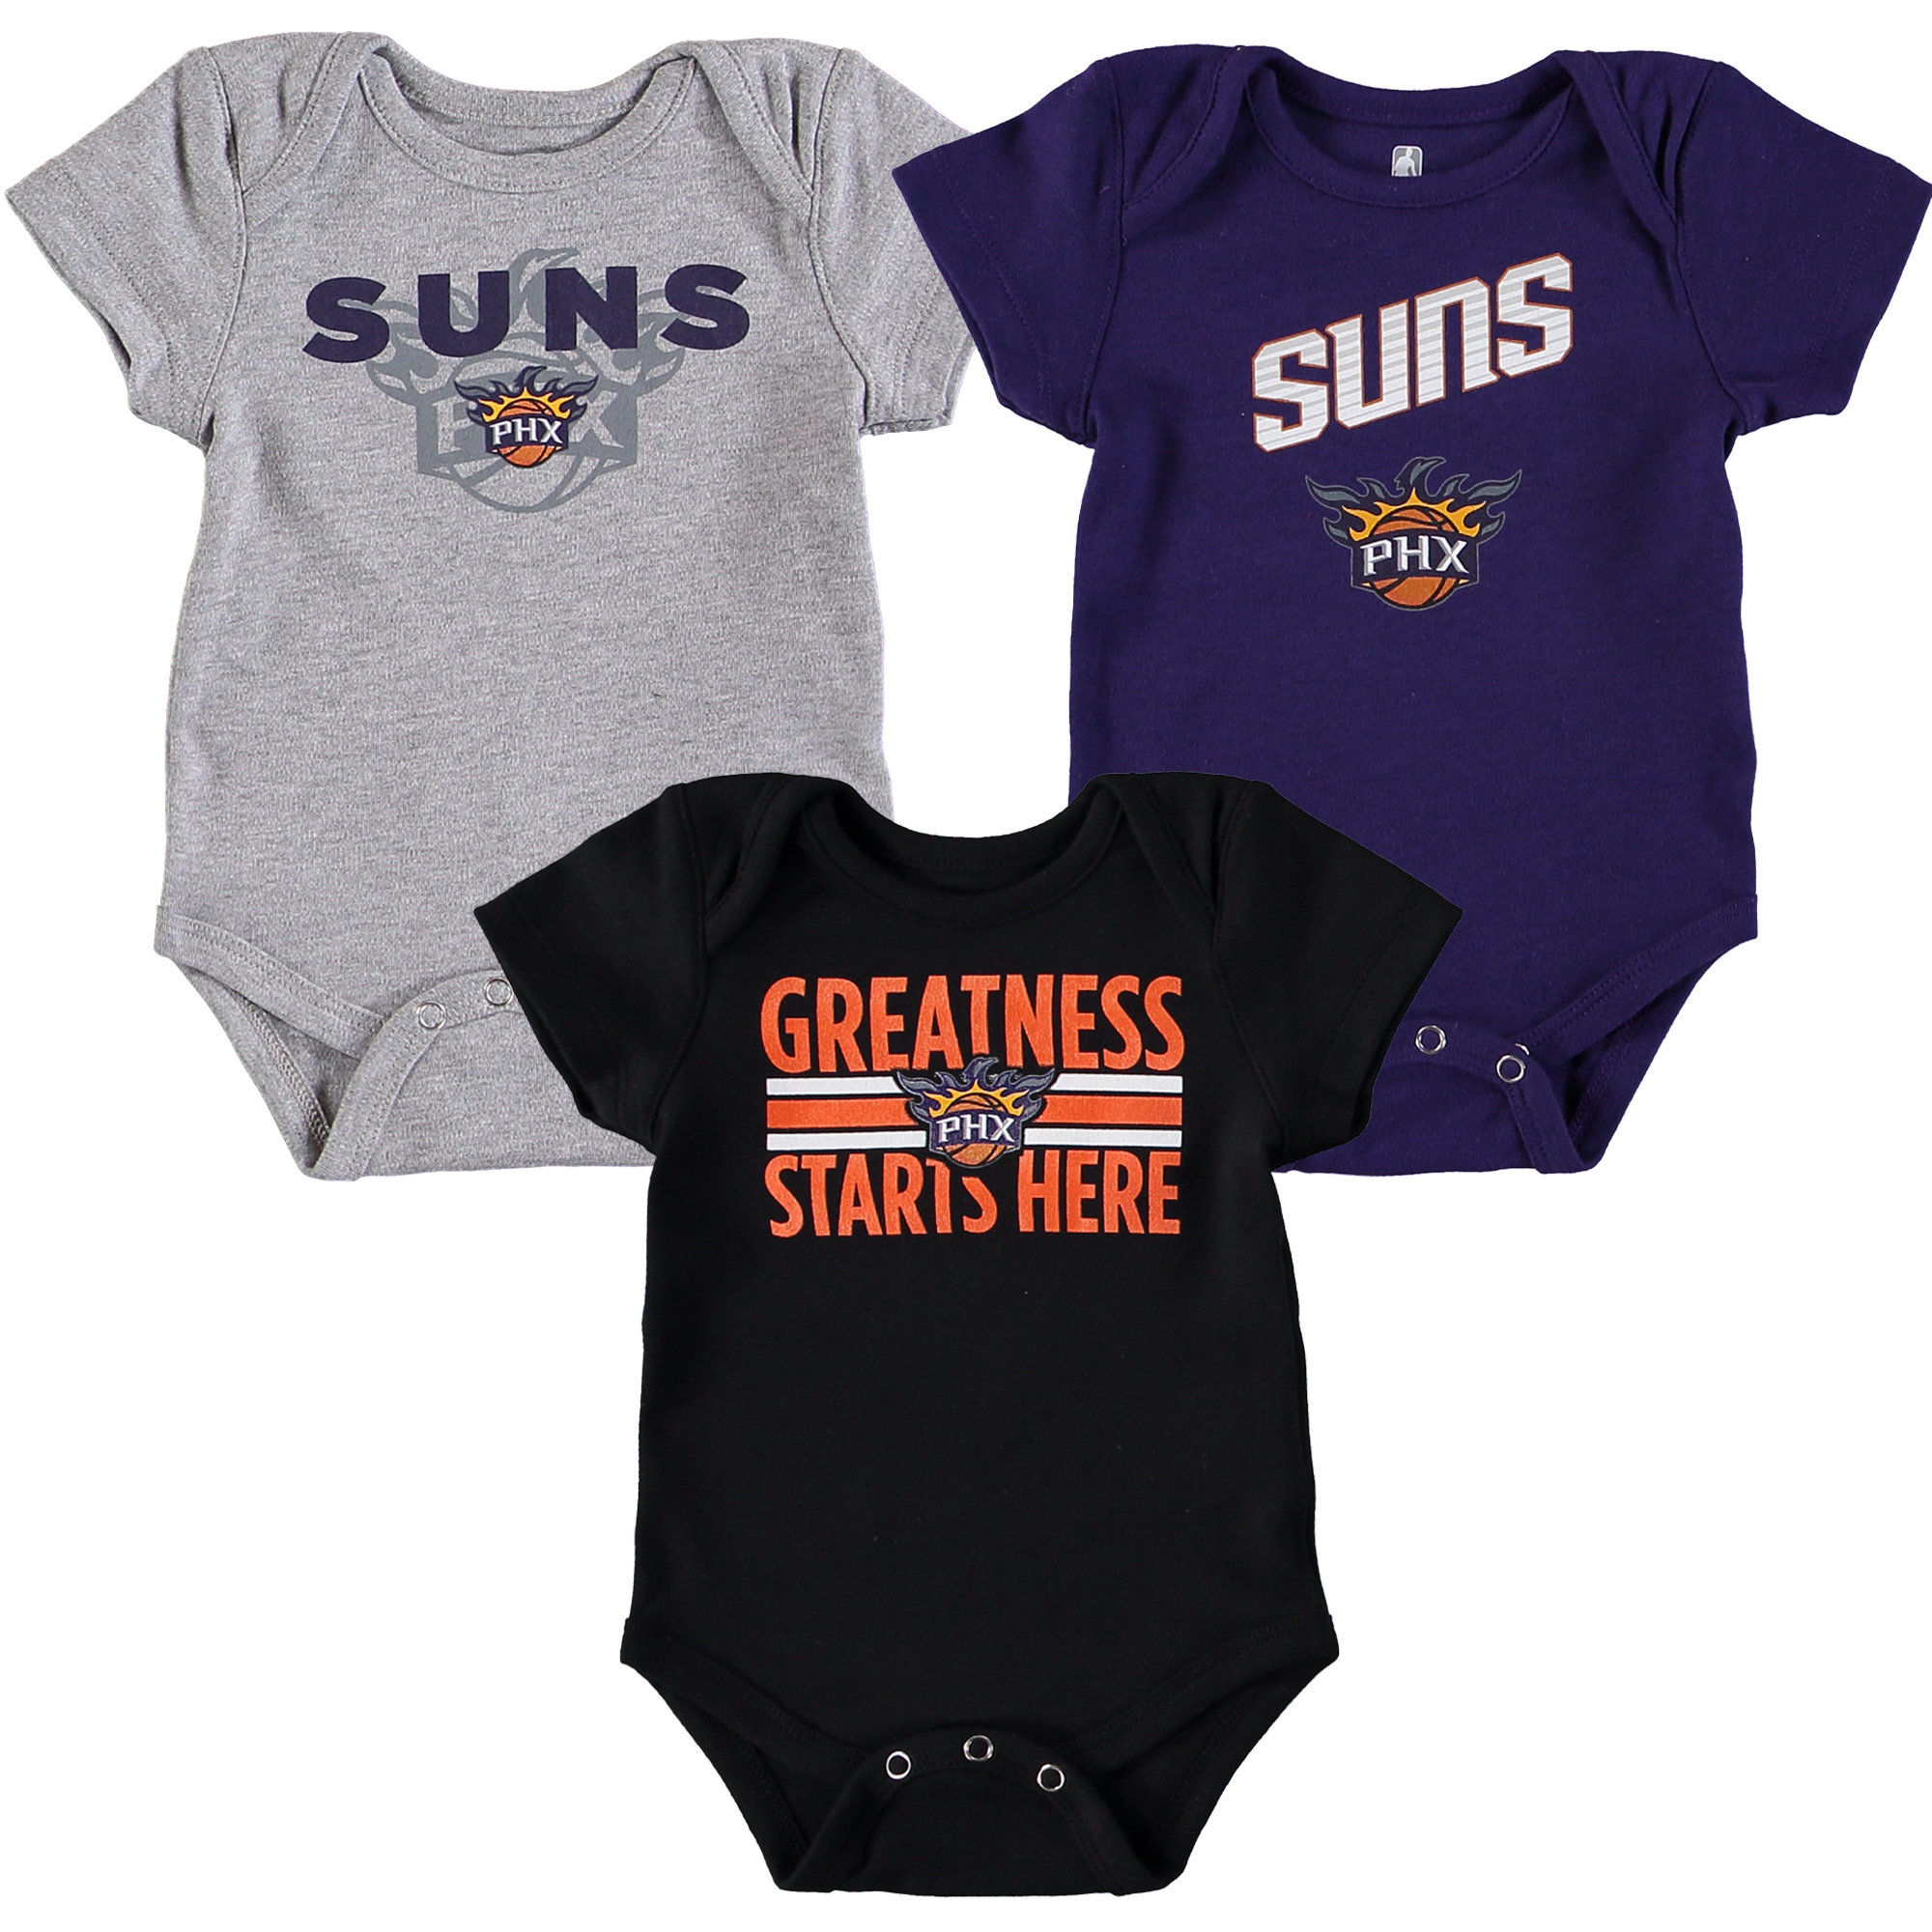 Phoenix Suns Newborn & Infant Three-Pack Bodysuit Set - Black/Purple/Gray